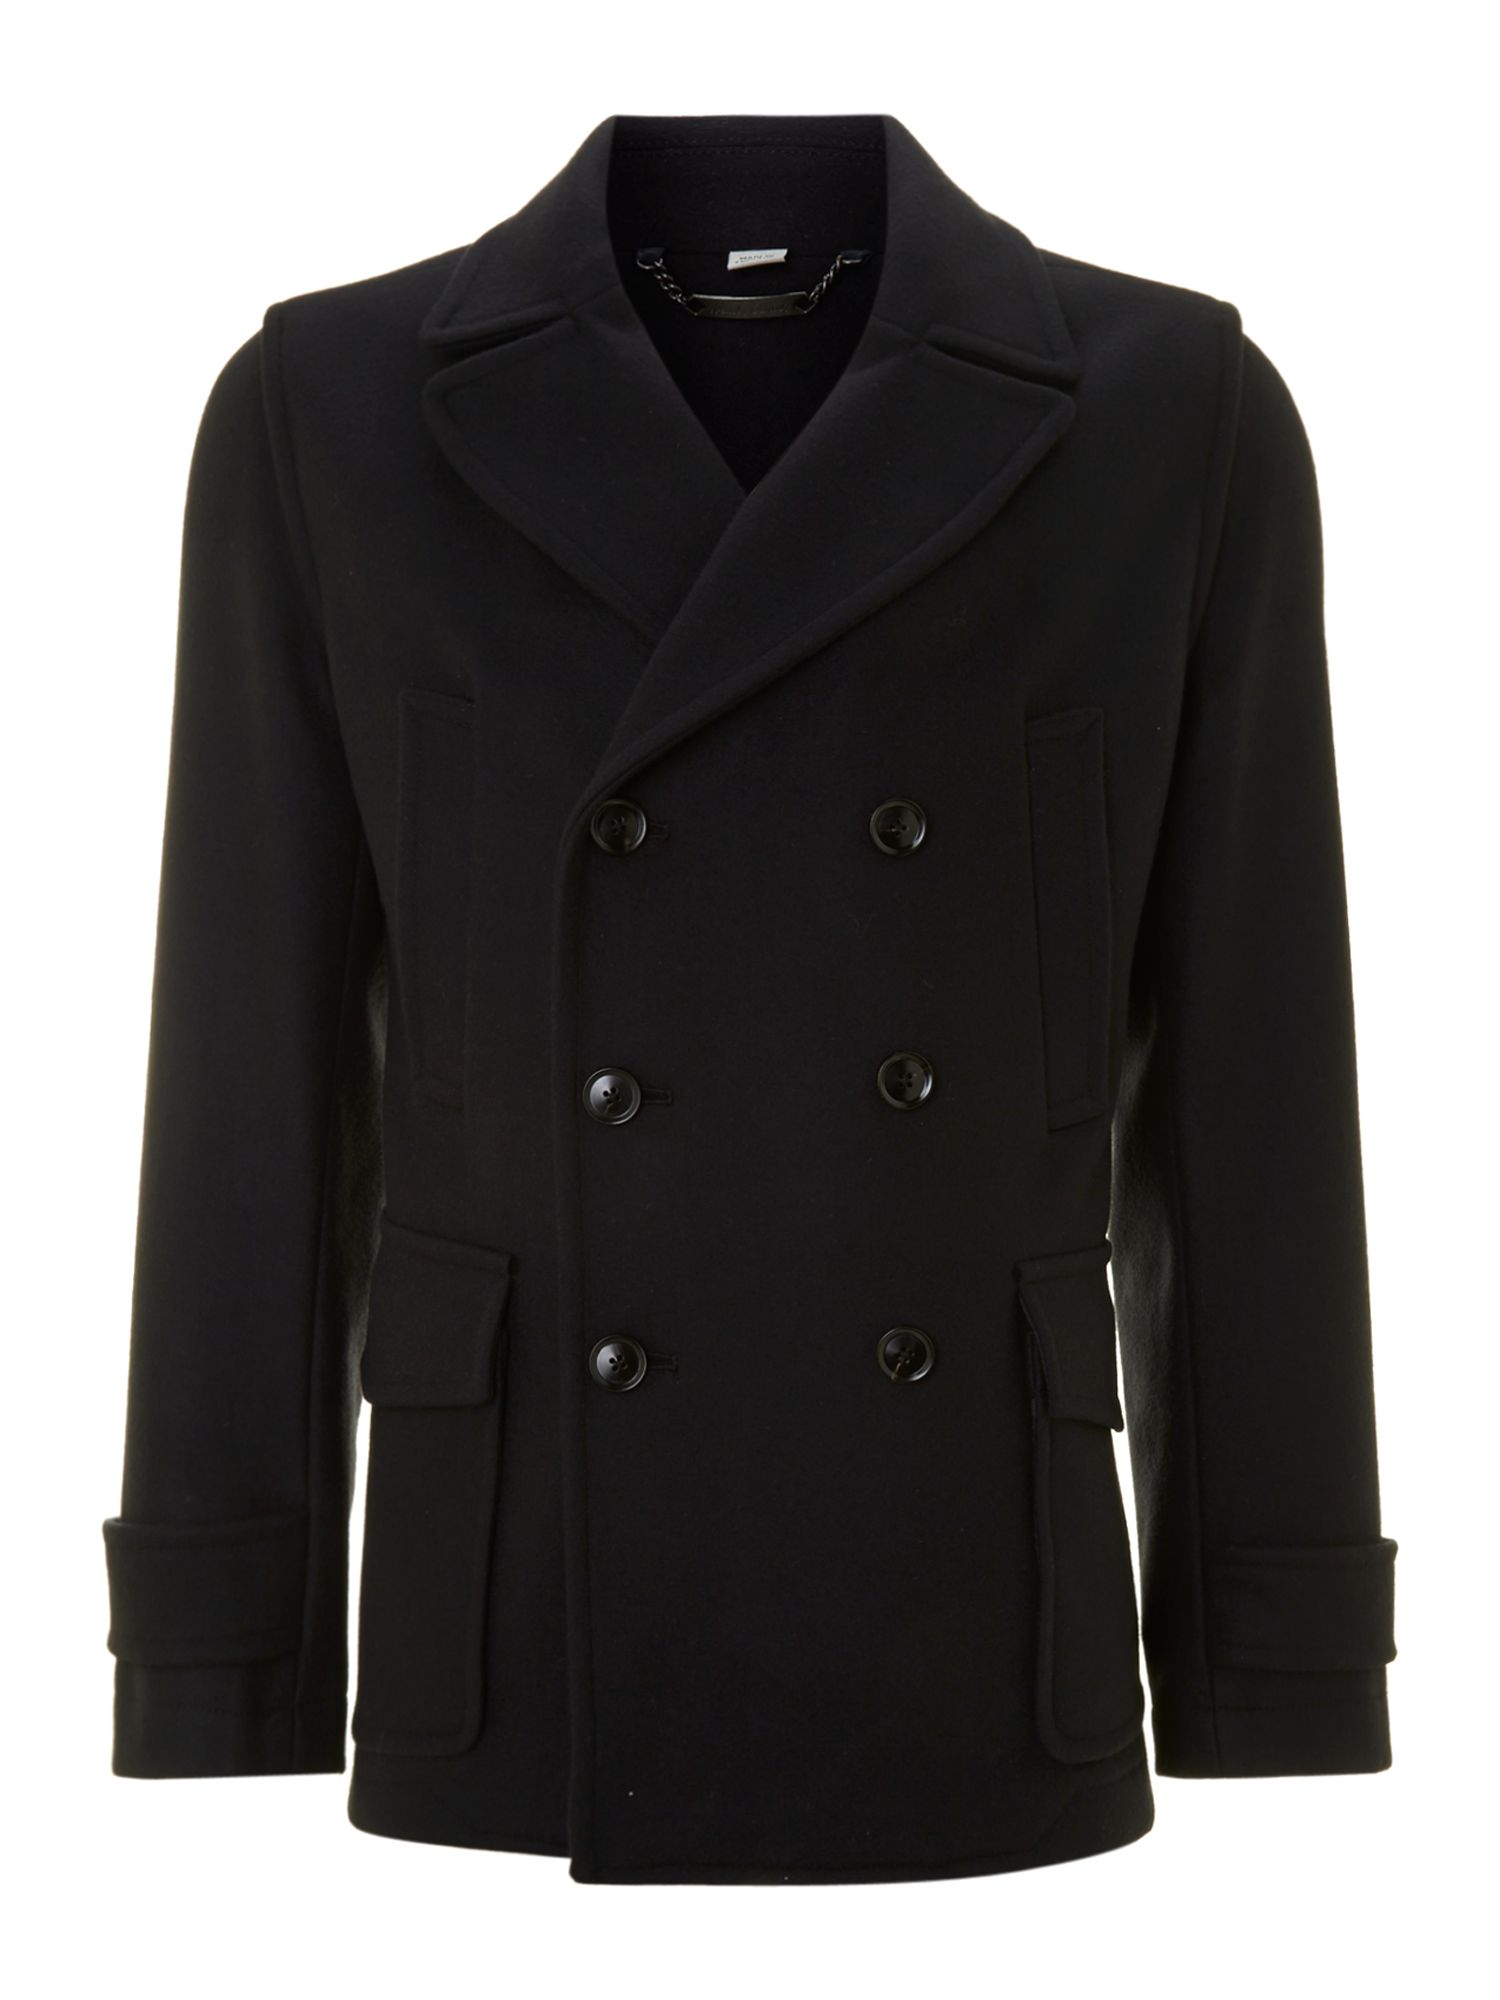 Classic regular fit peacoat